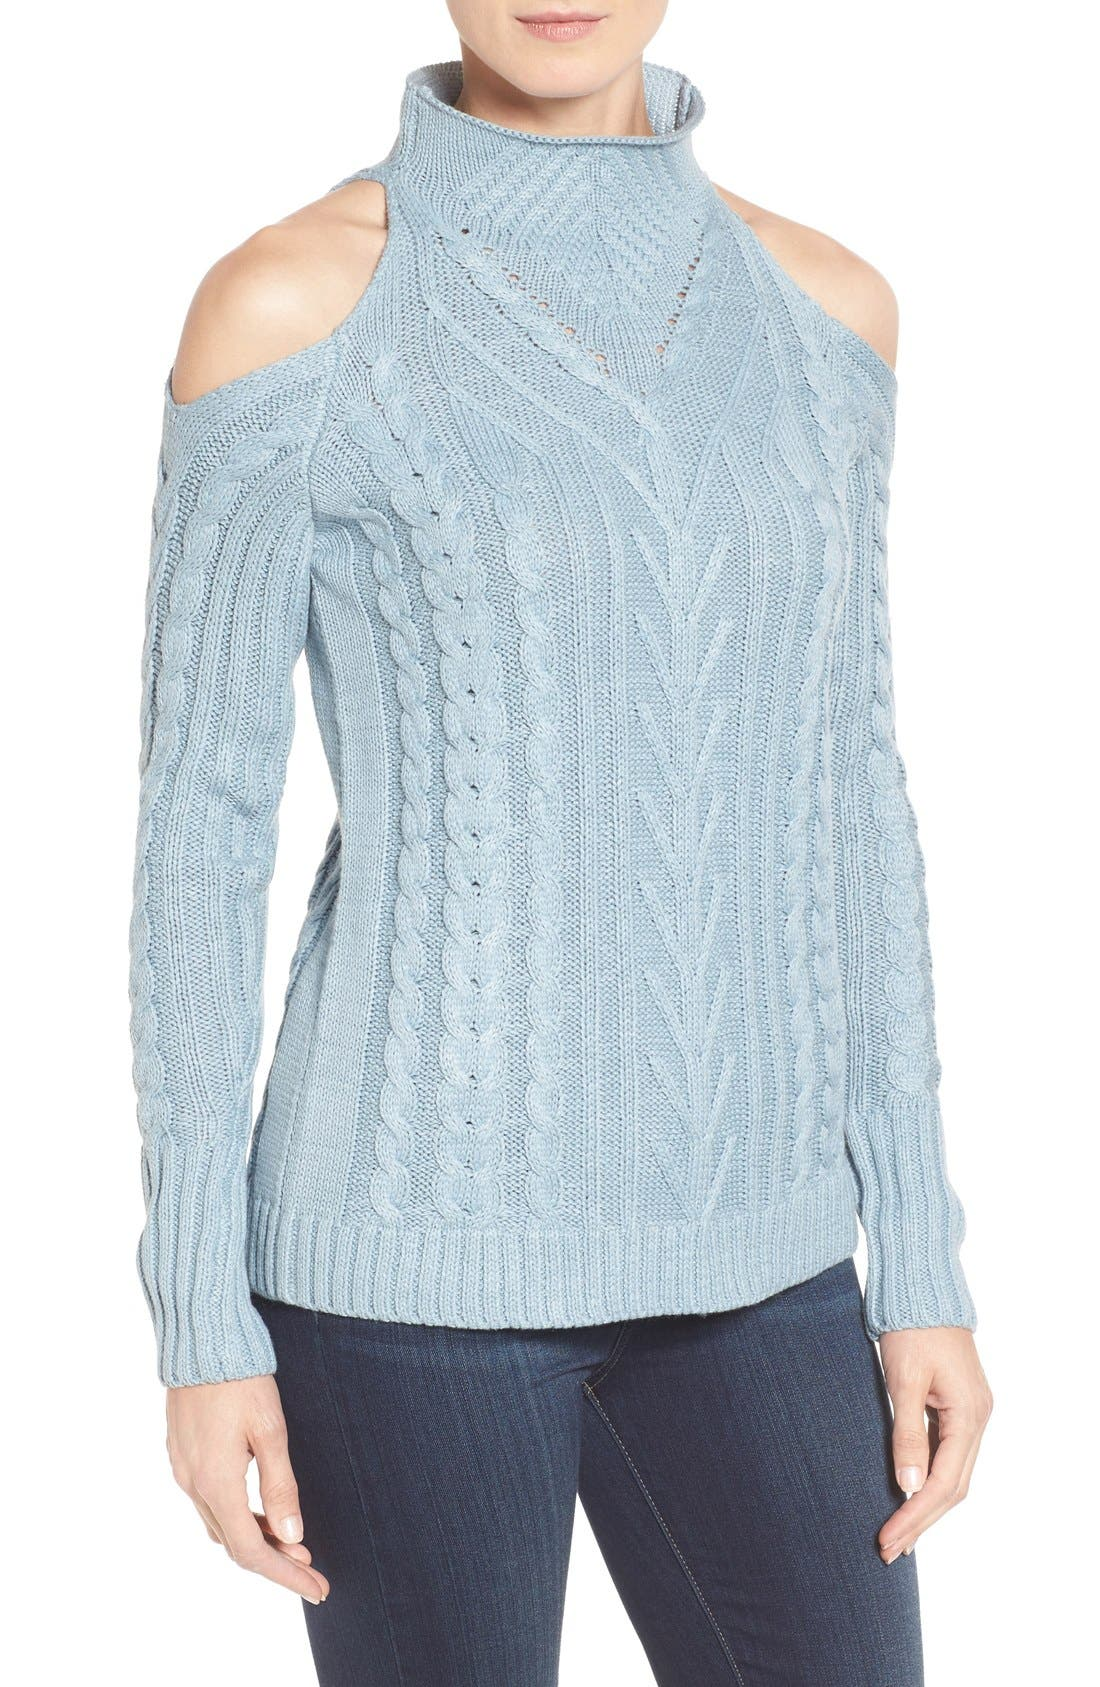 Alternate Image 1 Selected - RD Style Cold Shoulder Cable Knit Sweater